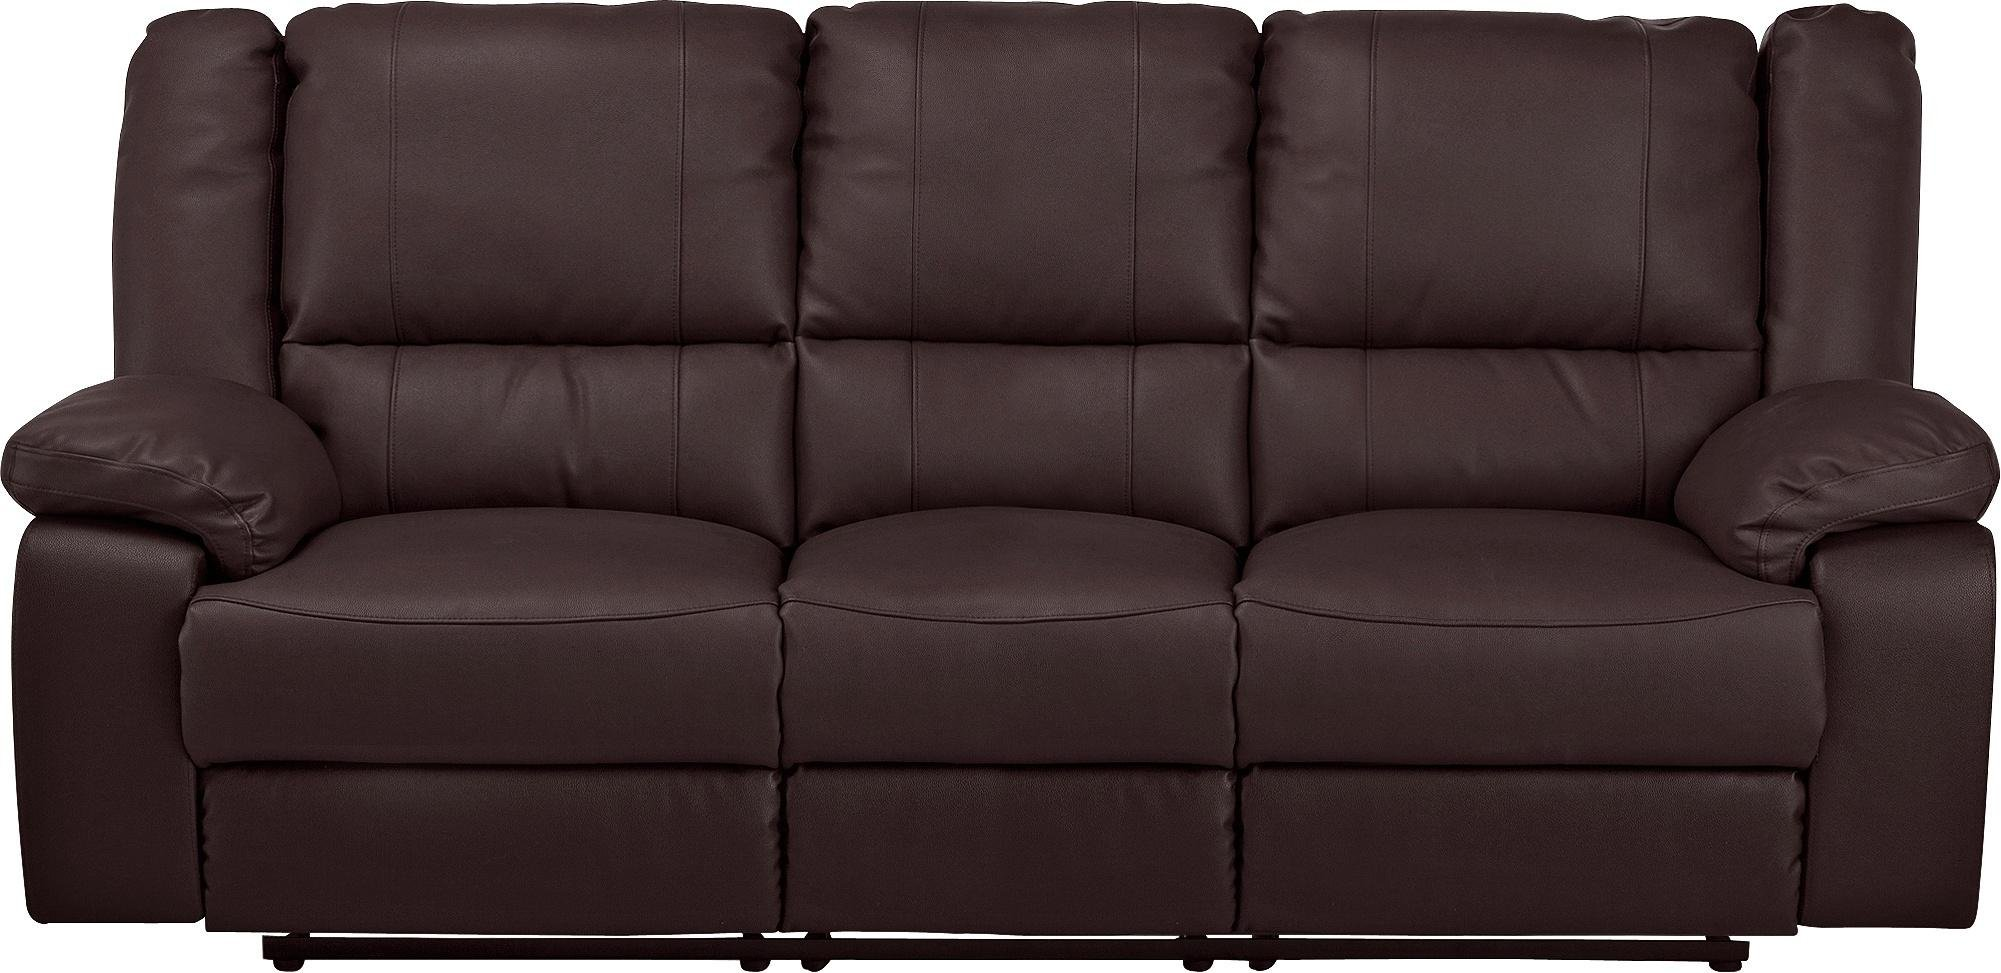 HOME Bruno 3 Seater Leather Eff Manual Recliner Sofa - Choc  sc 1 st  Argos & Buy HOME Bruno 3 Seater Leather Eff Manual Recliner Sofa - Choc at ... islam-shia.org